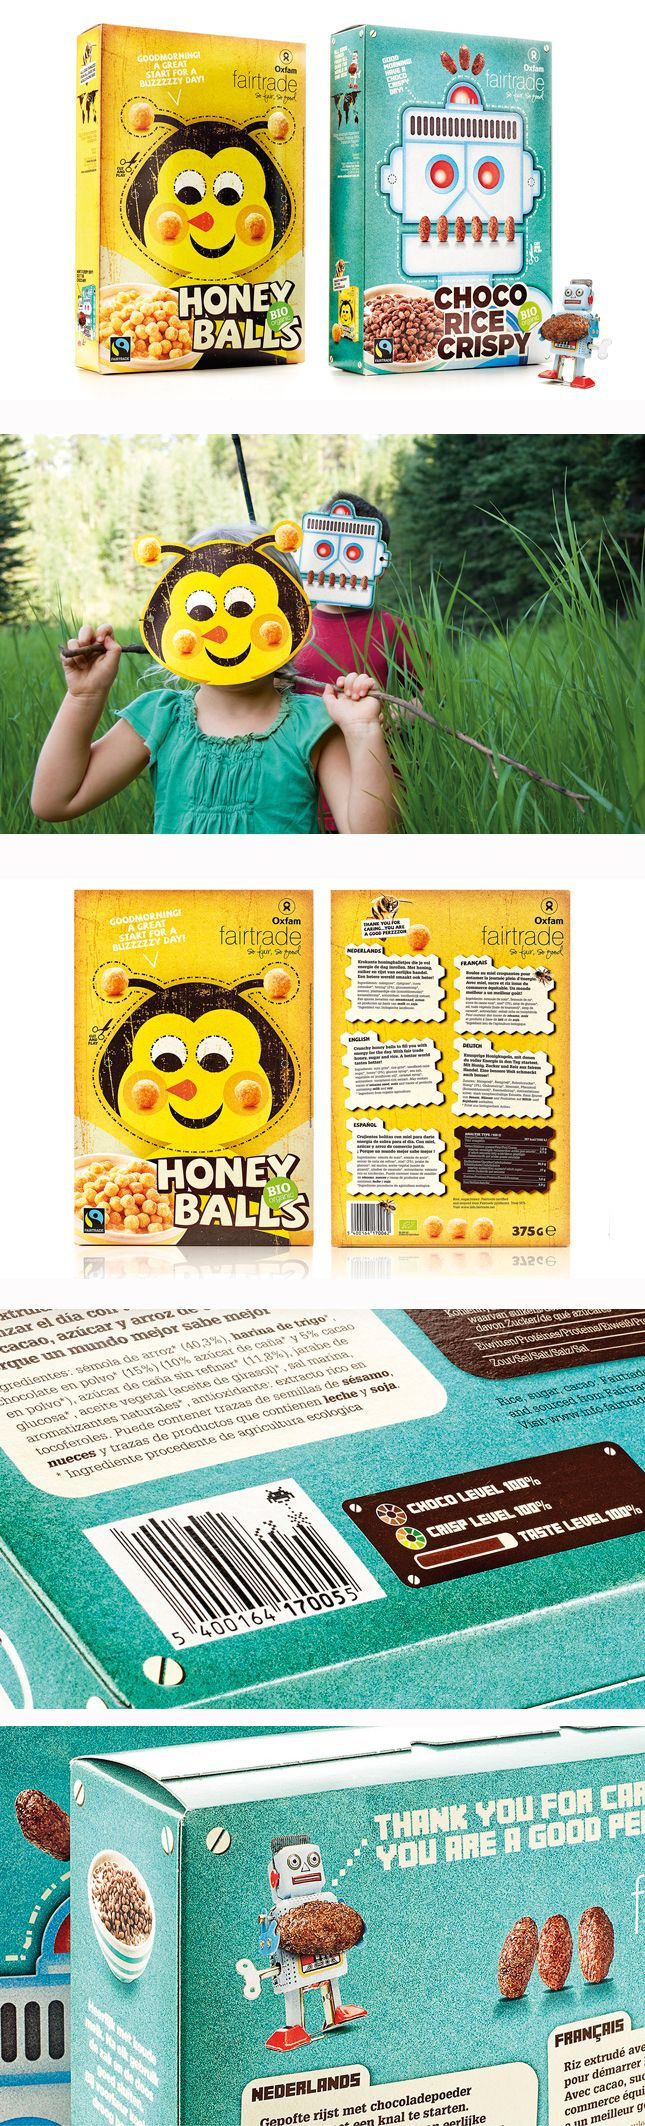 Oxfam Fairtrade. We created a packaging that met both the client's and consumer's needs even beyond their expectation. A clear and strong story with a cheeky homage to the iconic cereal packaging from the fifties. In every detail, special attention was paid to feeding children's imagination and telling Oxfam's story in all its simplicity. Transform yourself into a 'cereal' killer robot or buzz off to school like a sweet honeybee. www.quatremains.be